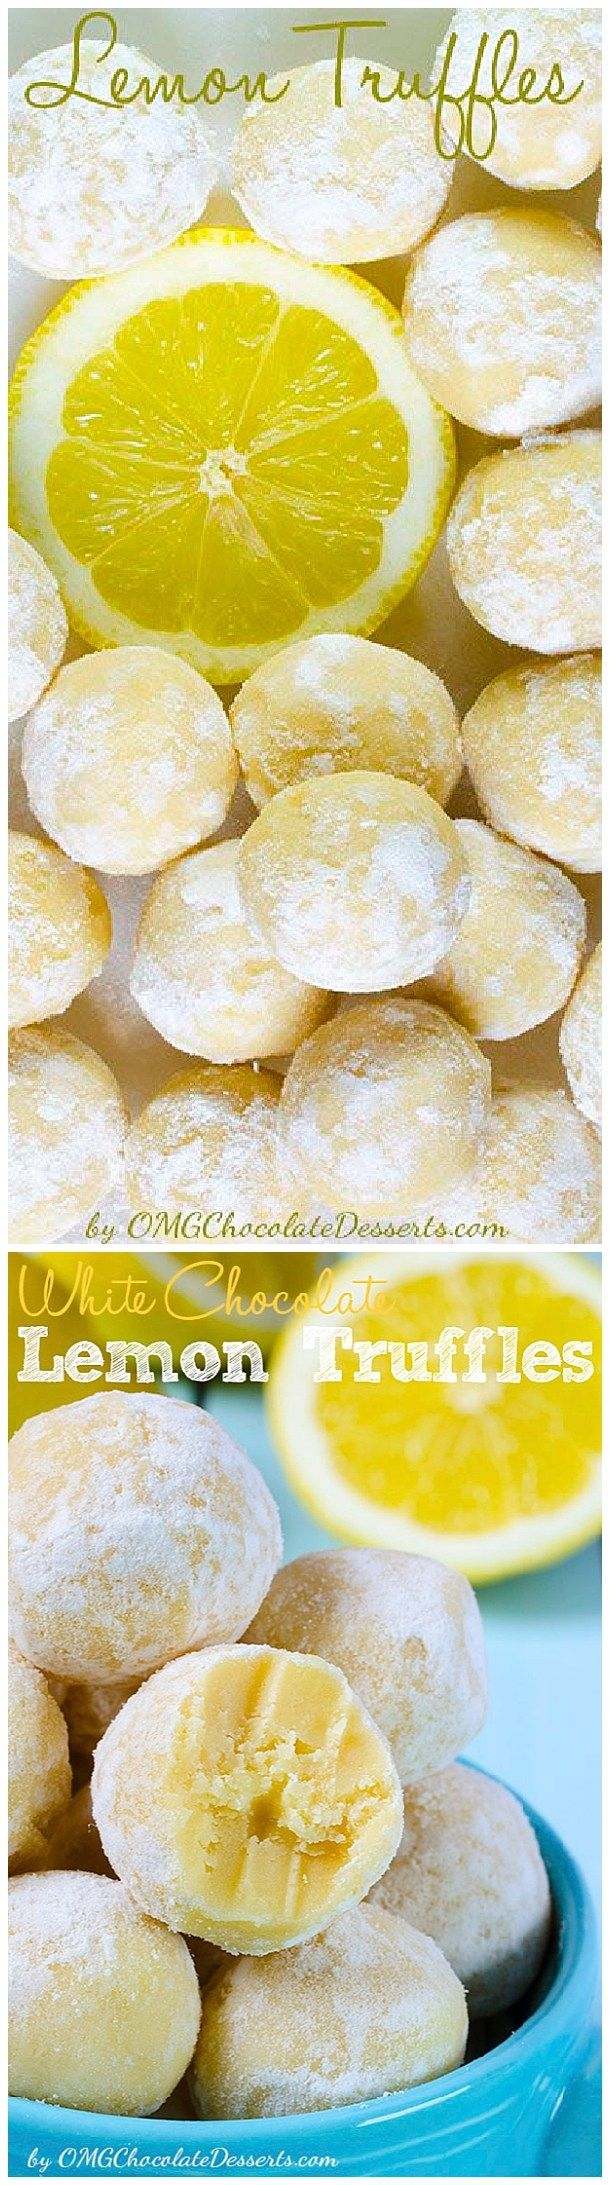 White Chocolate Lemon Truffles Recipe via OMG Chocolate Desserts - The BEST Easy Lemon Desserts and Treats Recipes - Perfect For Easter, Mother's Day Brunch, Bridal or Baby Showers and Pretty Spring and Summer Holiday Party Refreshments!